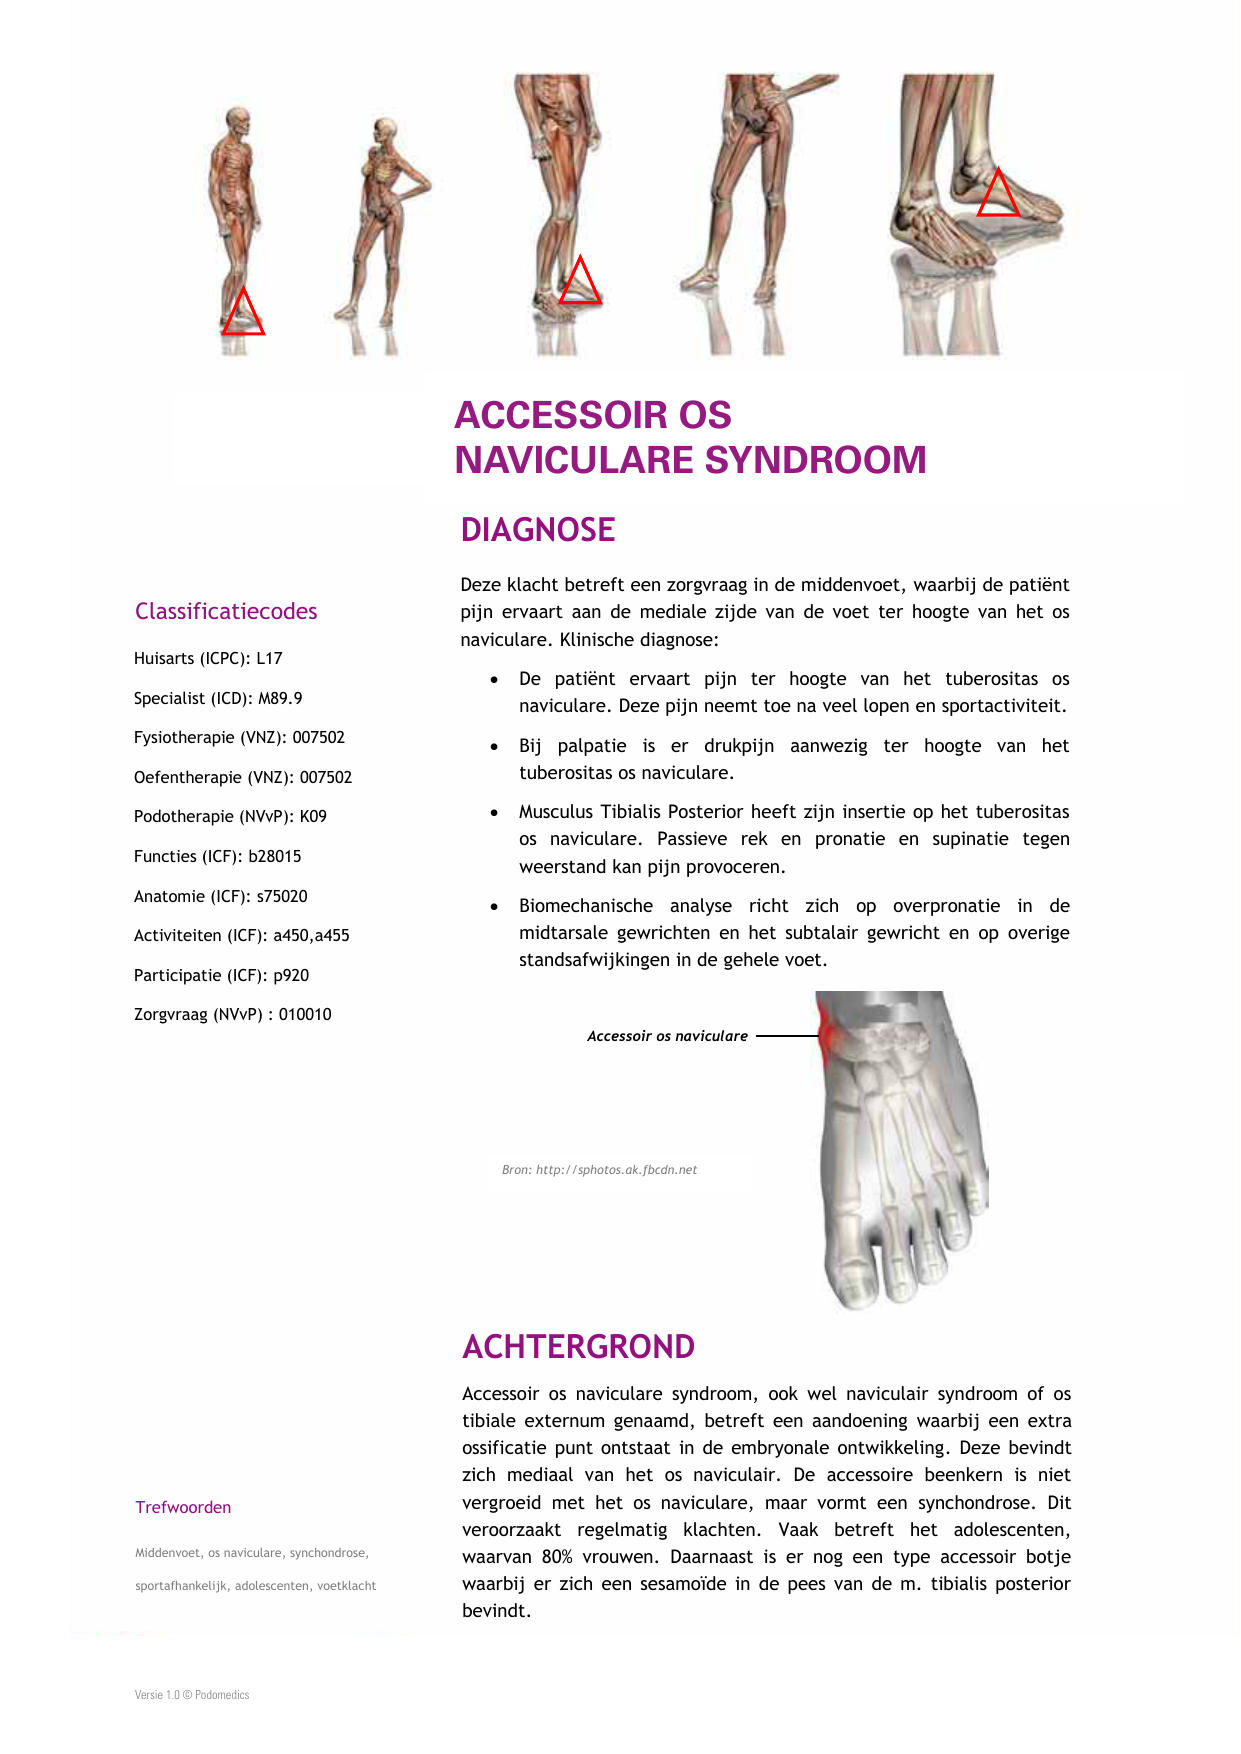 5.1: ACCESSOIR OS NAVICULARE SYNDROOM